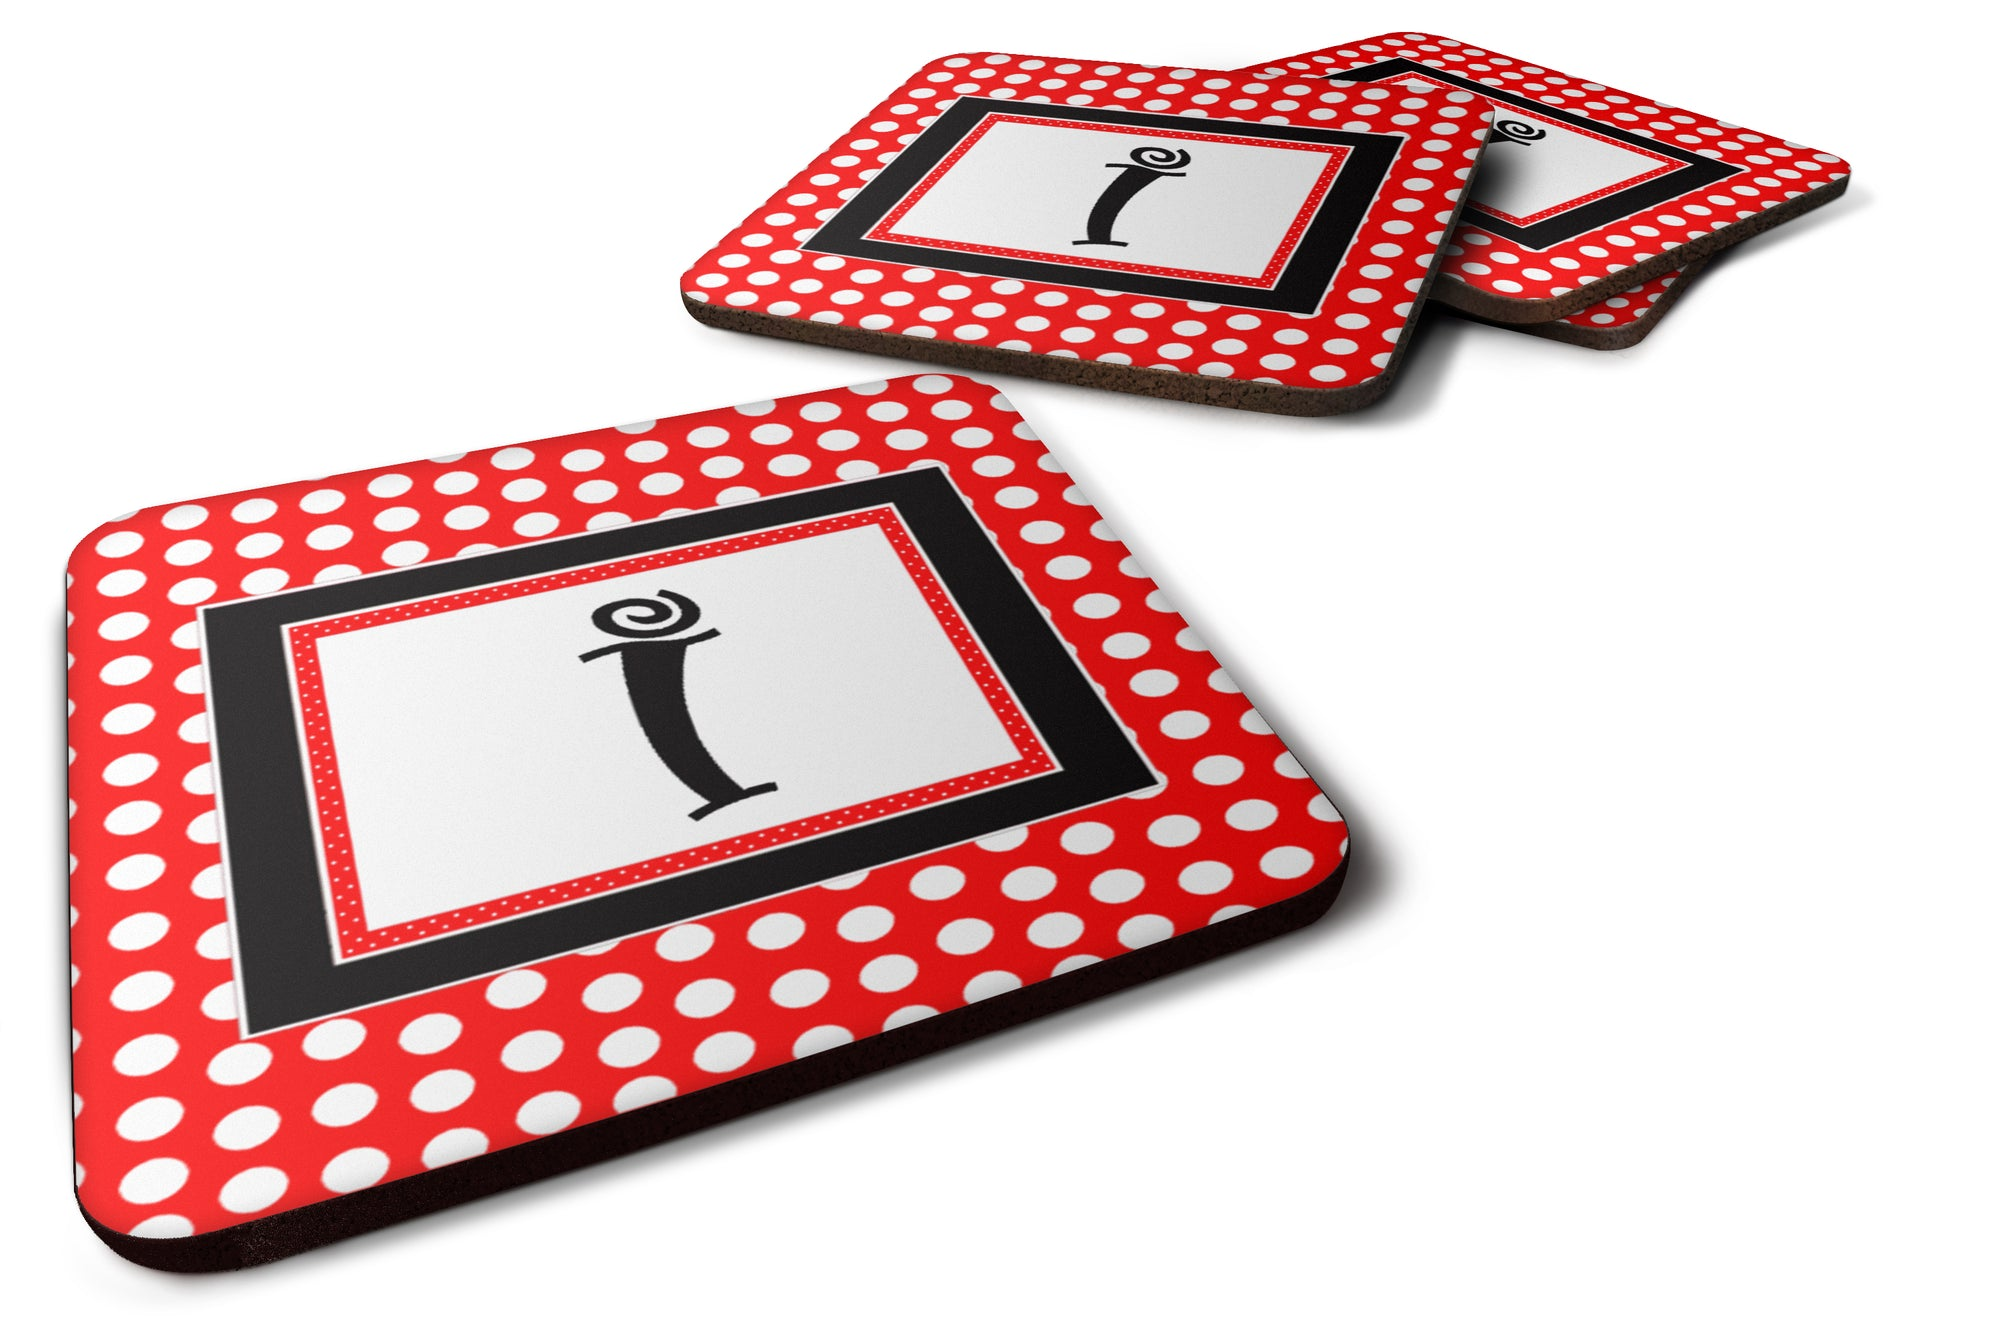 Set of 4 Monogram - Red Black Polka Dots Foam Coasters Initial Letter I by Caroline's Treasures